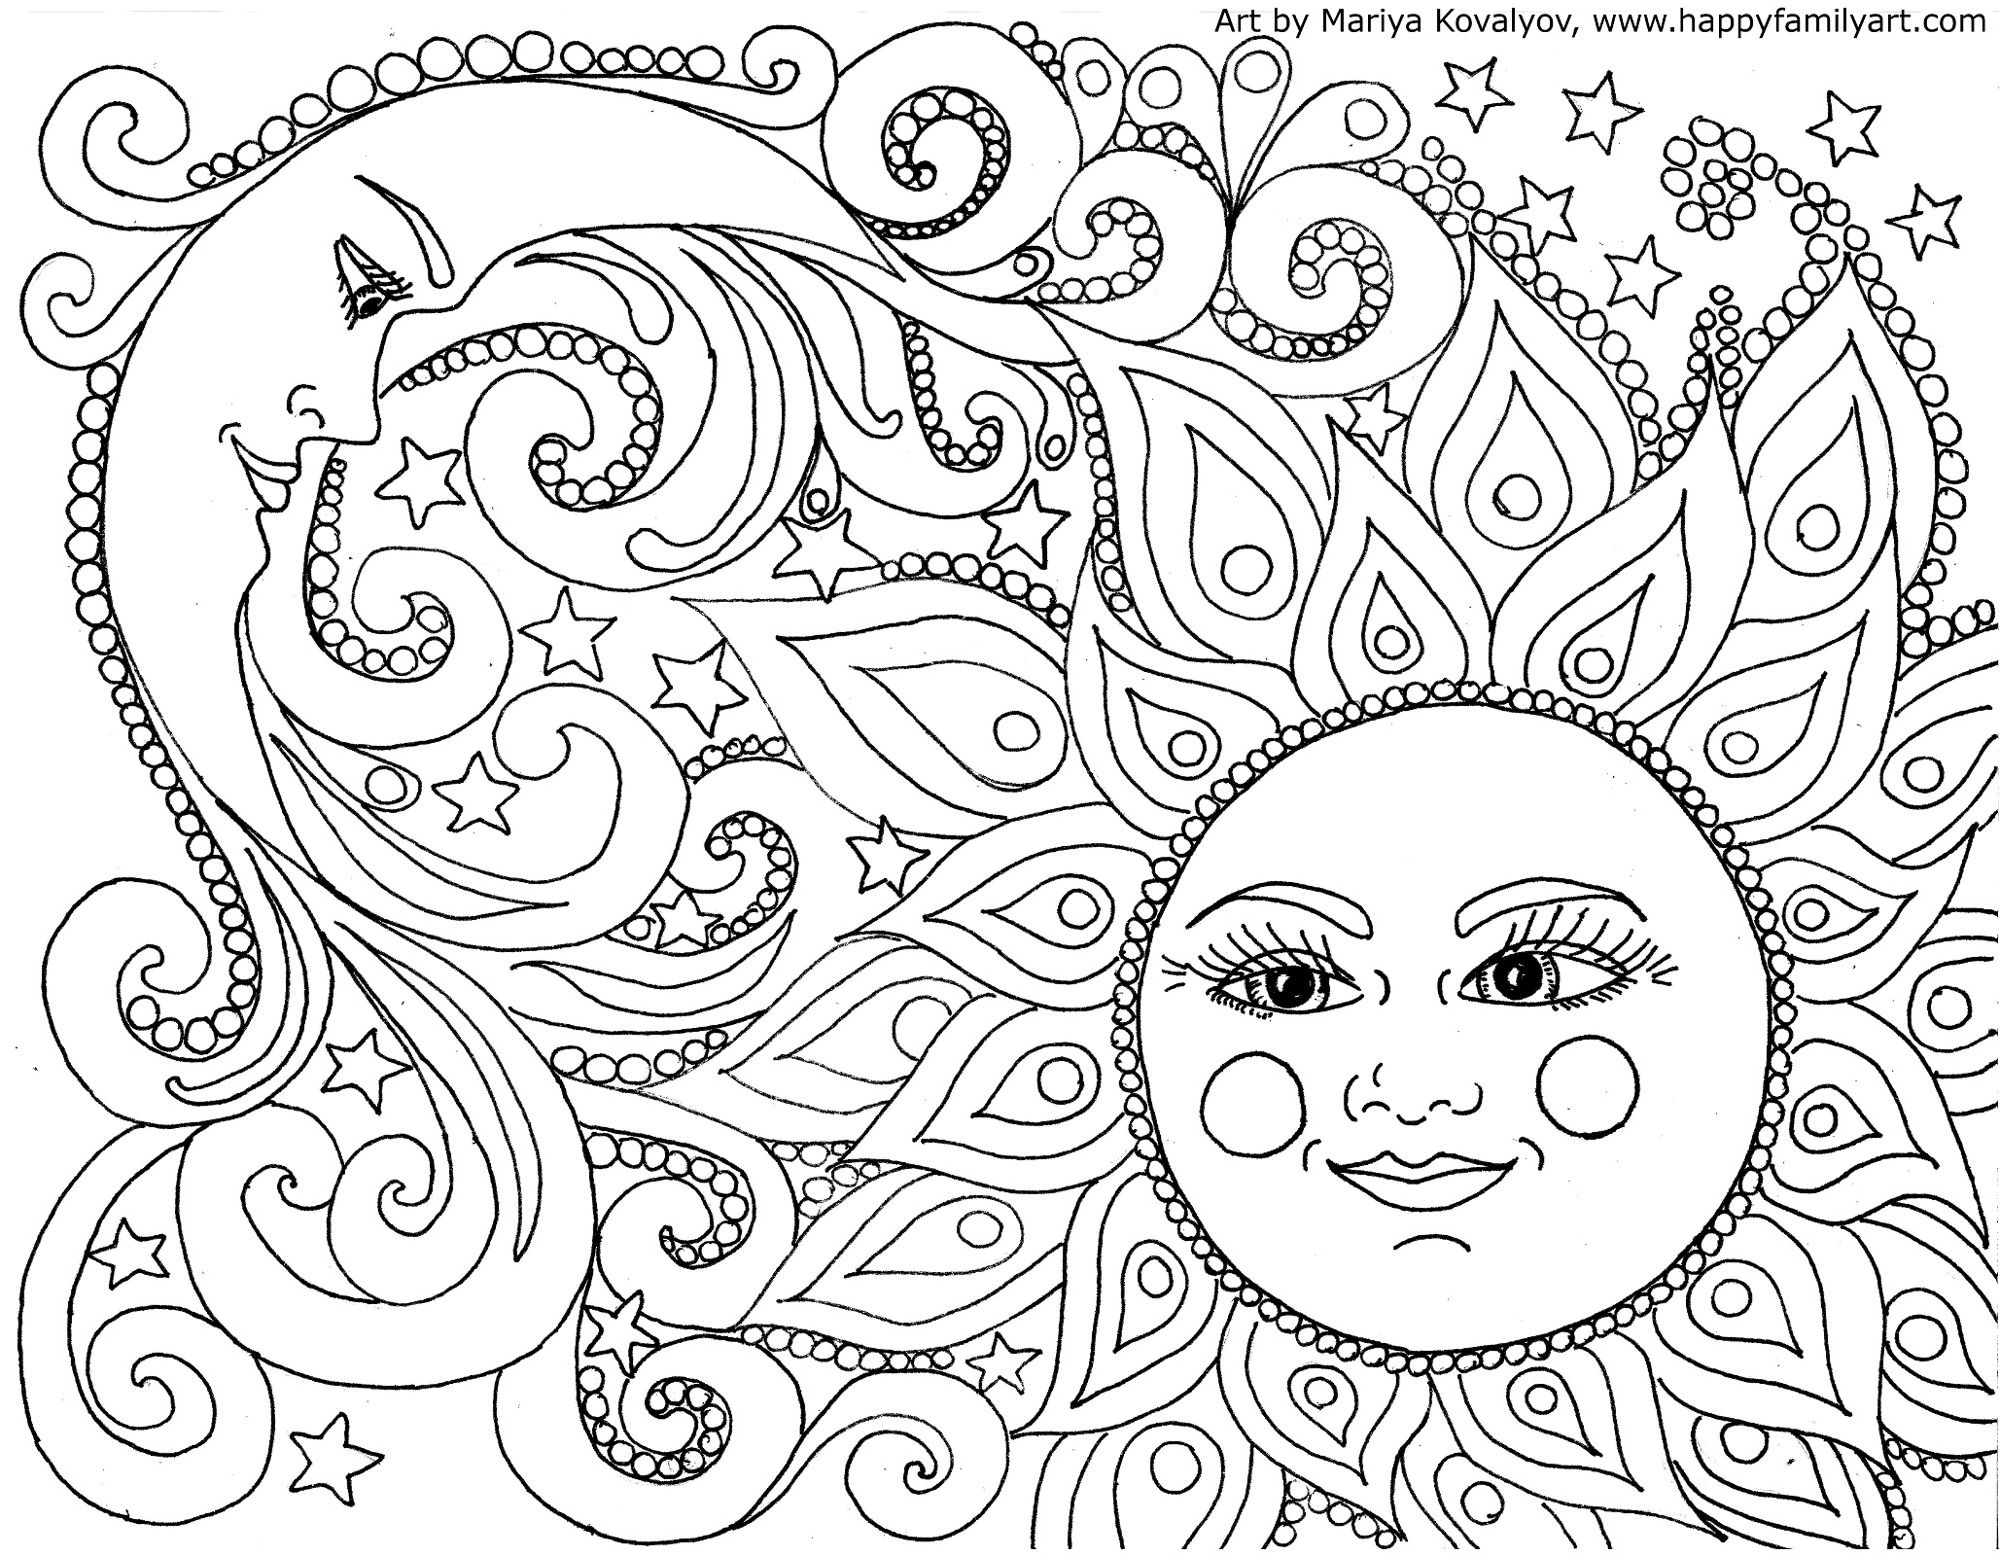 i made many great fun and original coloring pages color your heart out - Sun Coloring Page